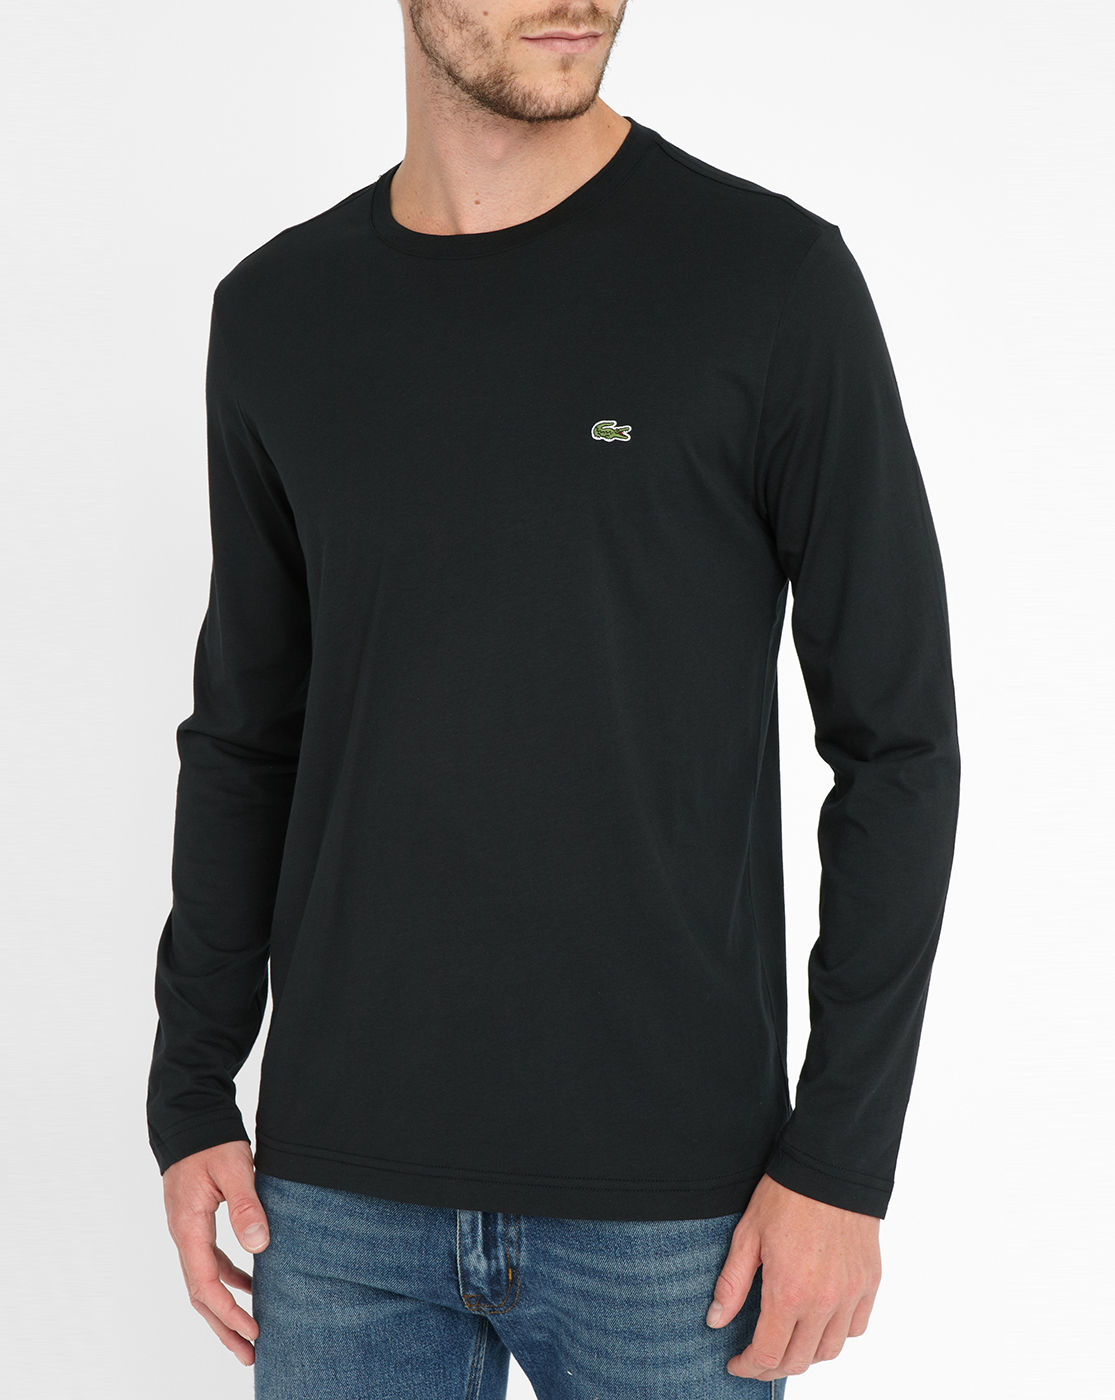 Lacoste black long sleeve t shirt in black for men lyst for Long sleeve black tee shirts